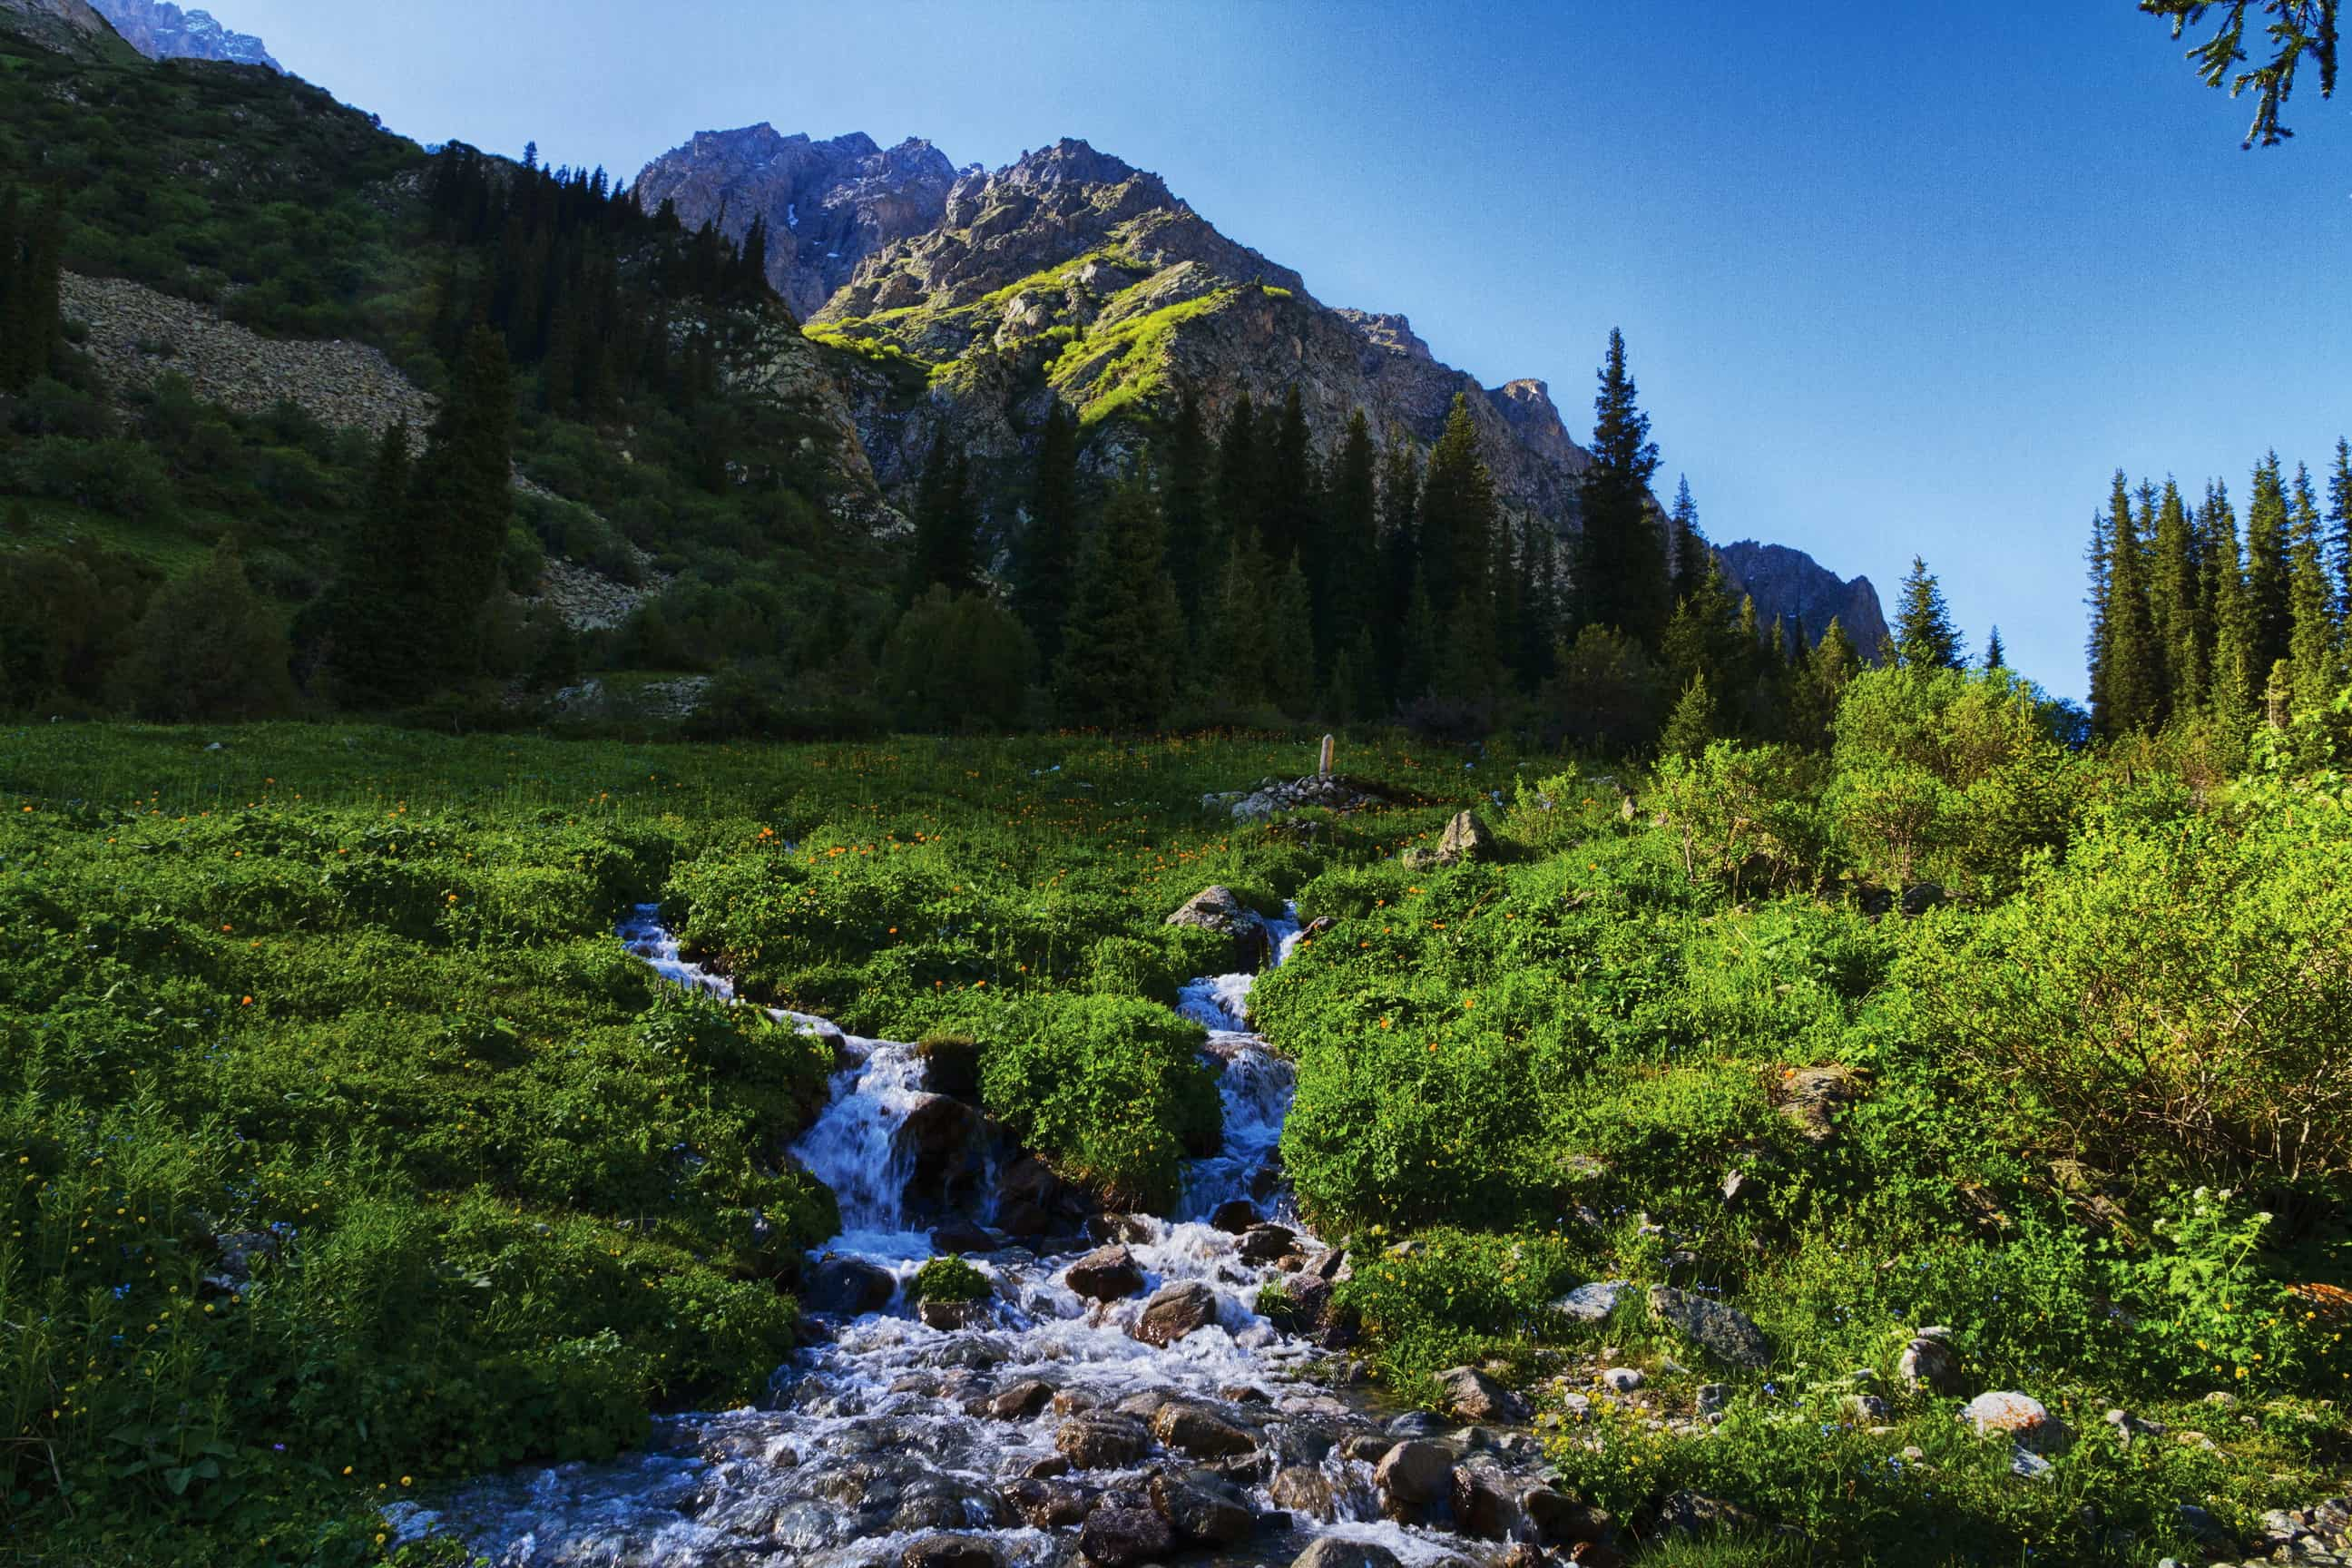 Mountains_Scenery_Kyrgyzstan_Tian_Shan_Stream_Grass_Nature_2592x1728